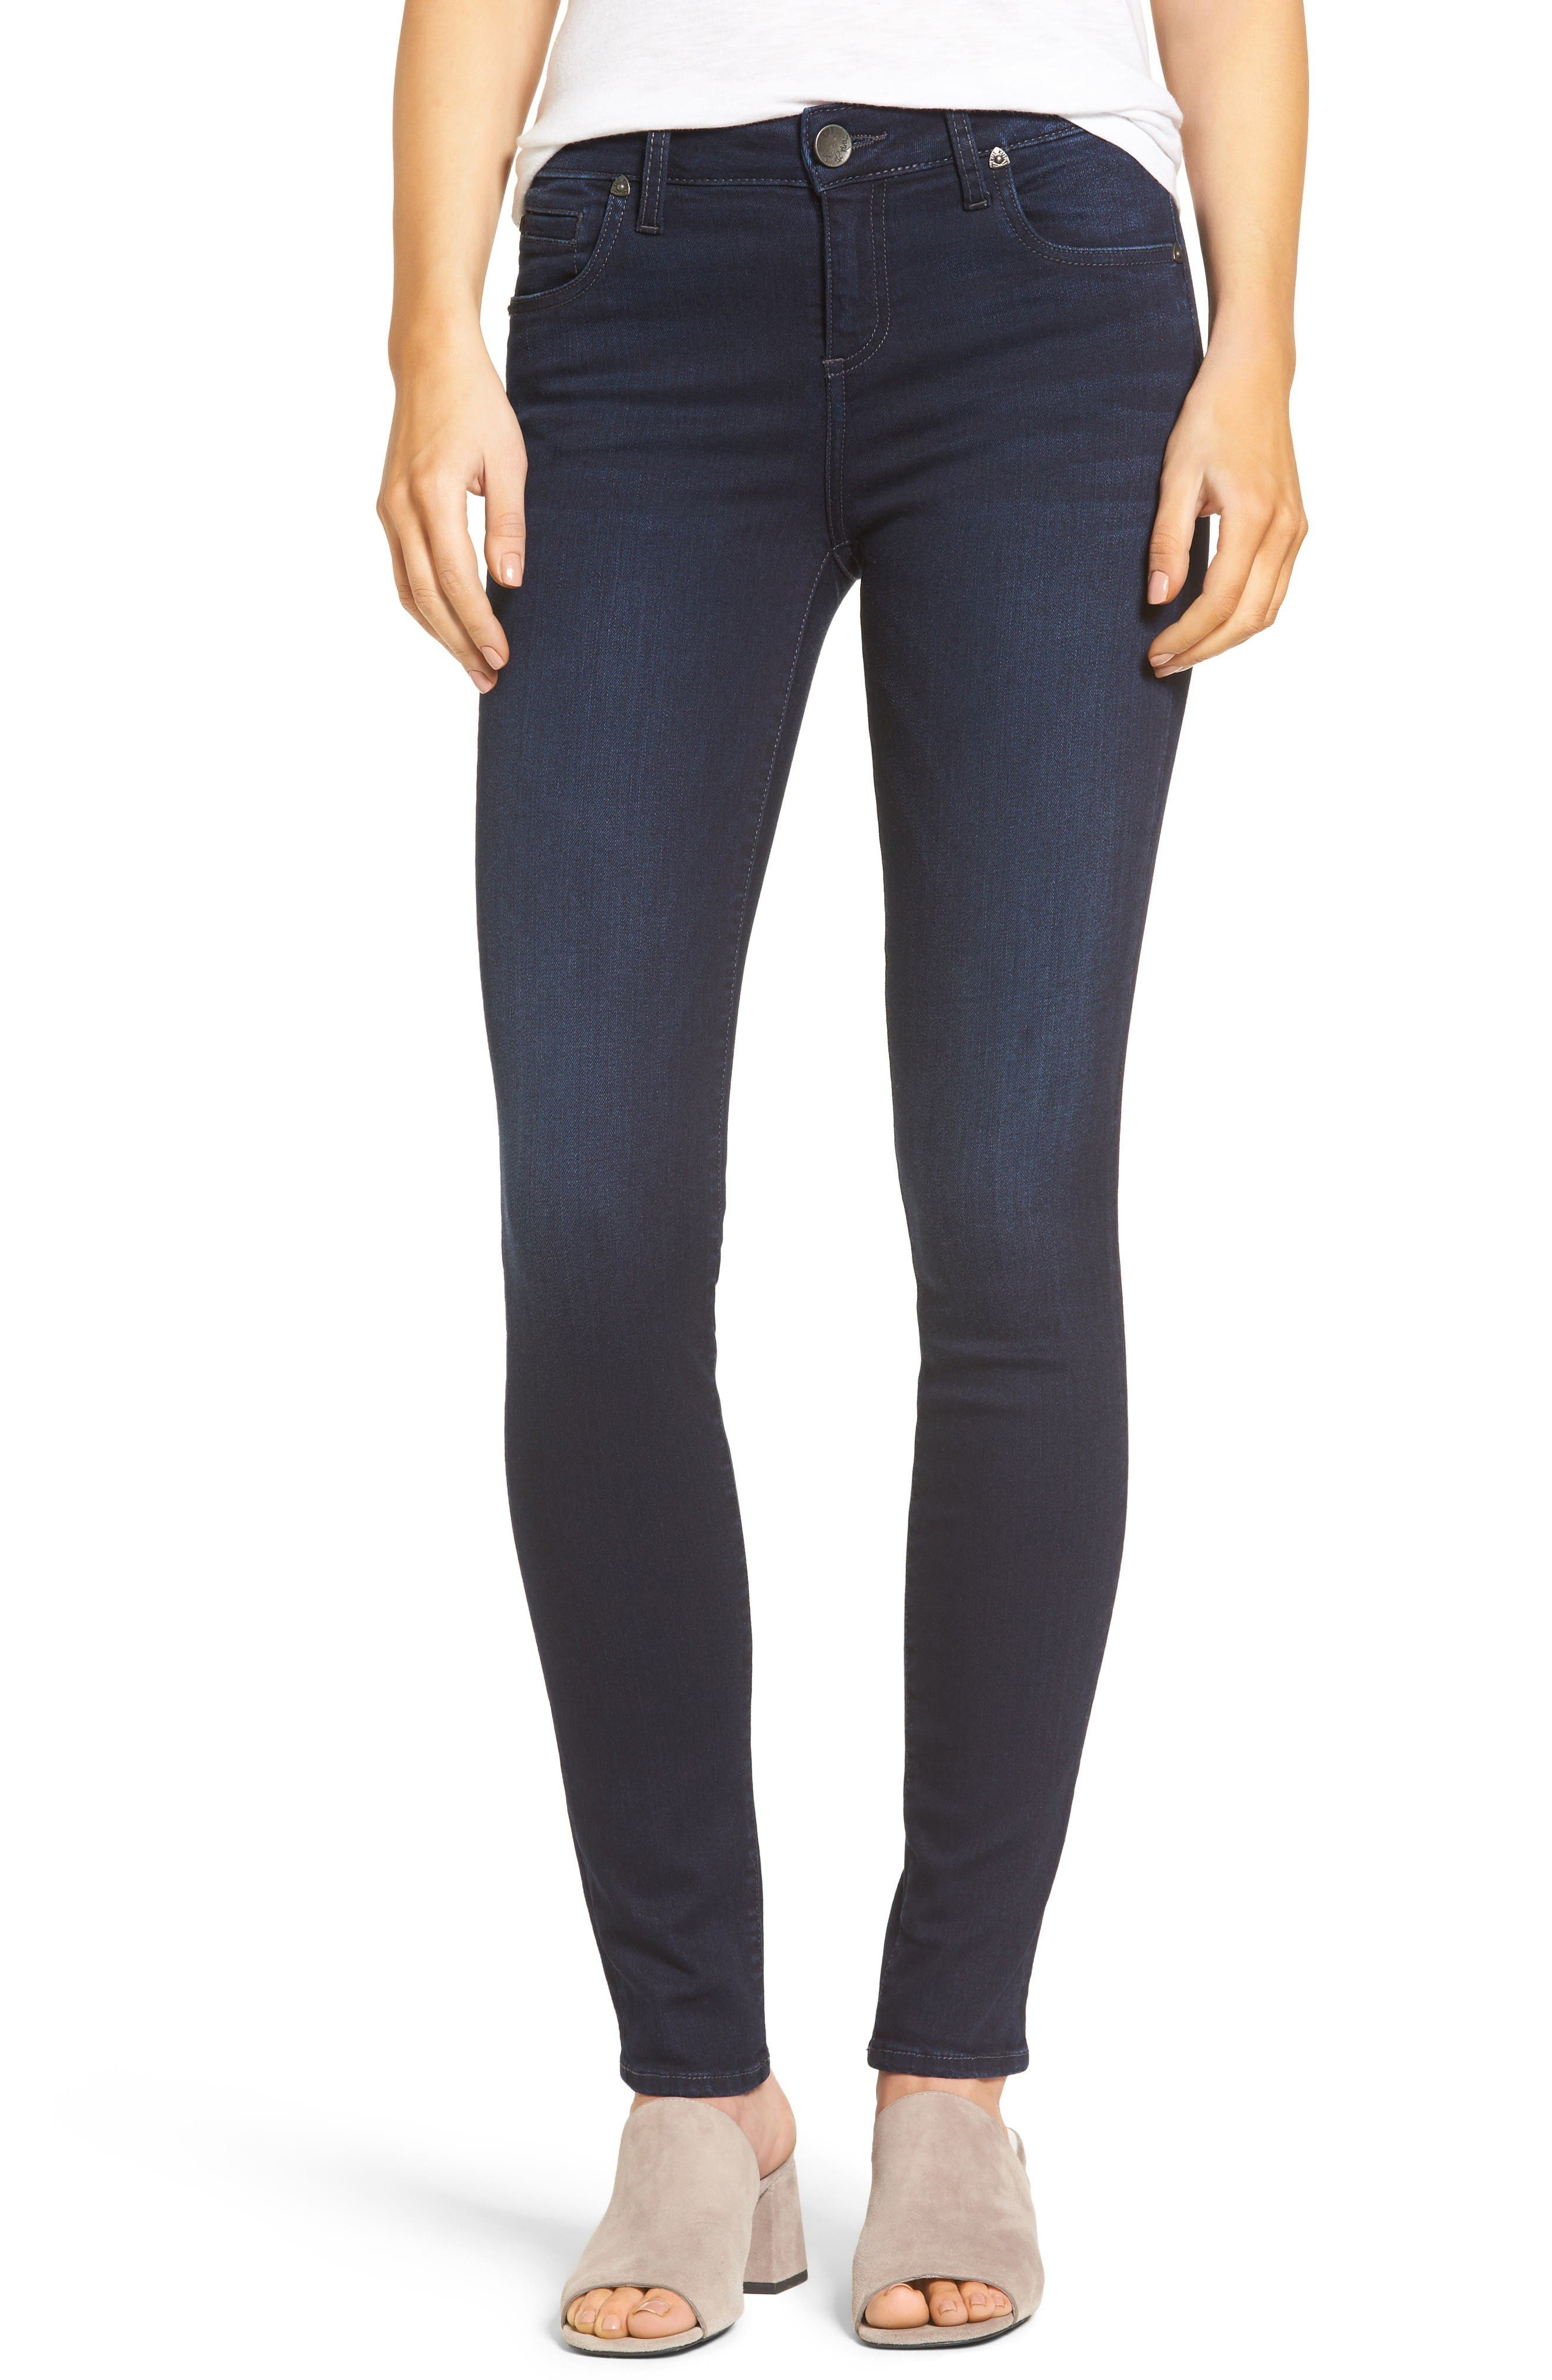 Alternate Image 1 Selected - KUT from the Kloth Diana Stretch Skinny Jeans (Gained) (Regular & Petite)